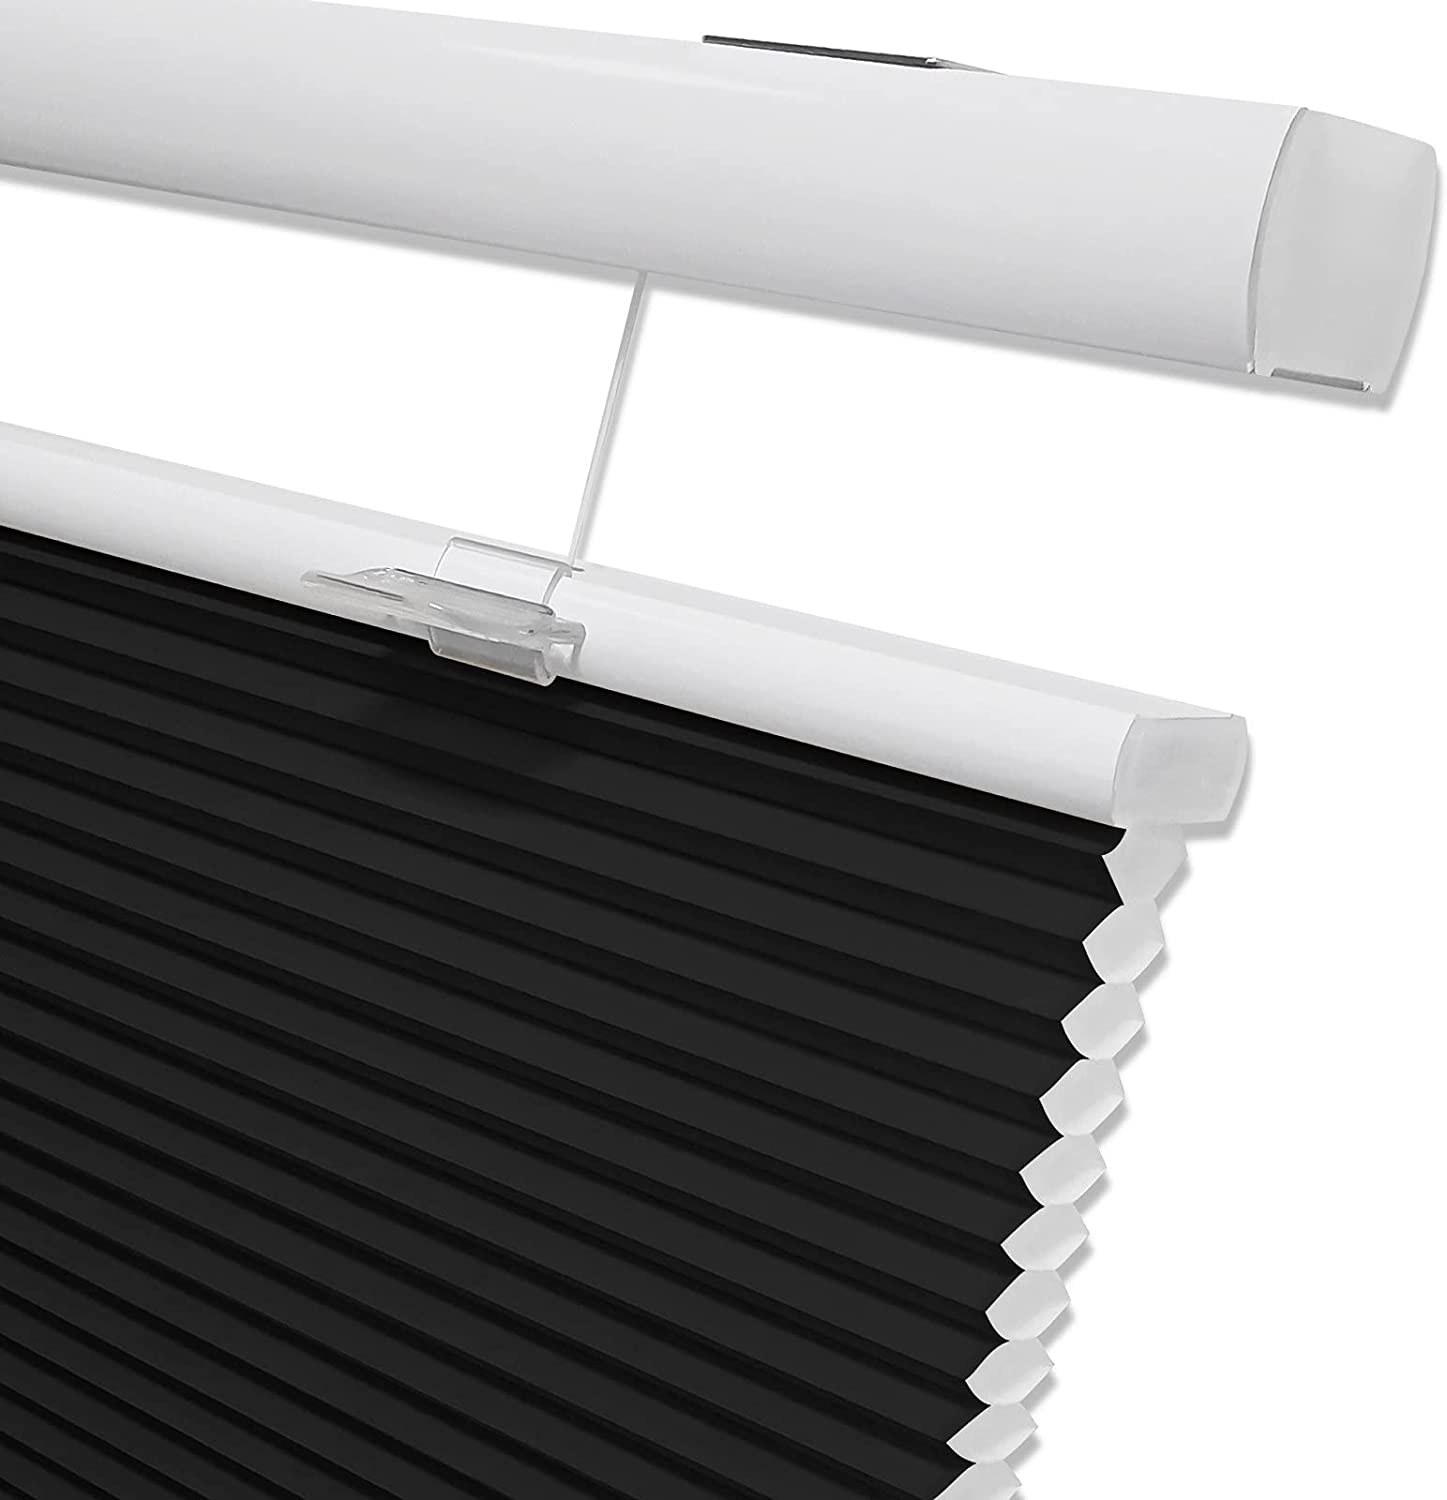 Keego Light Filtering Top Spring new work Down cheap Bottom Shades Window Cordless Up